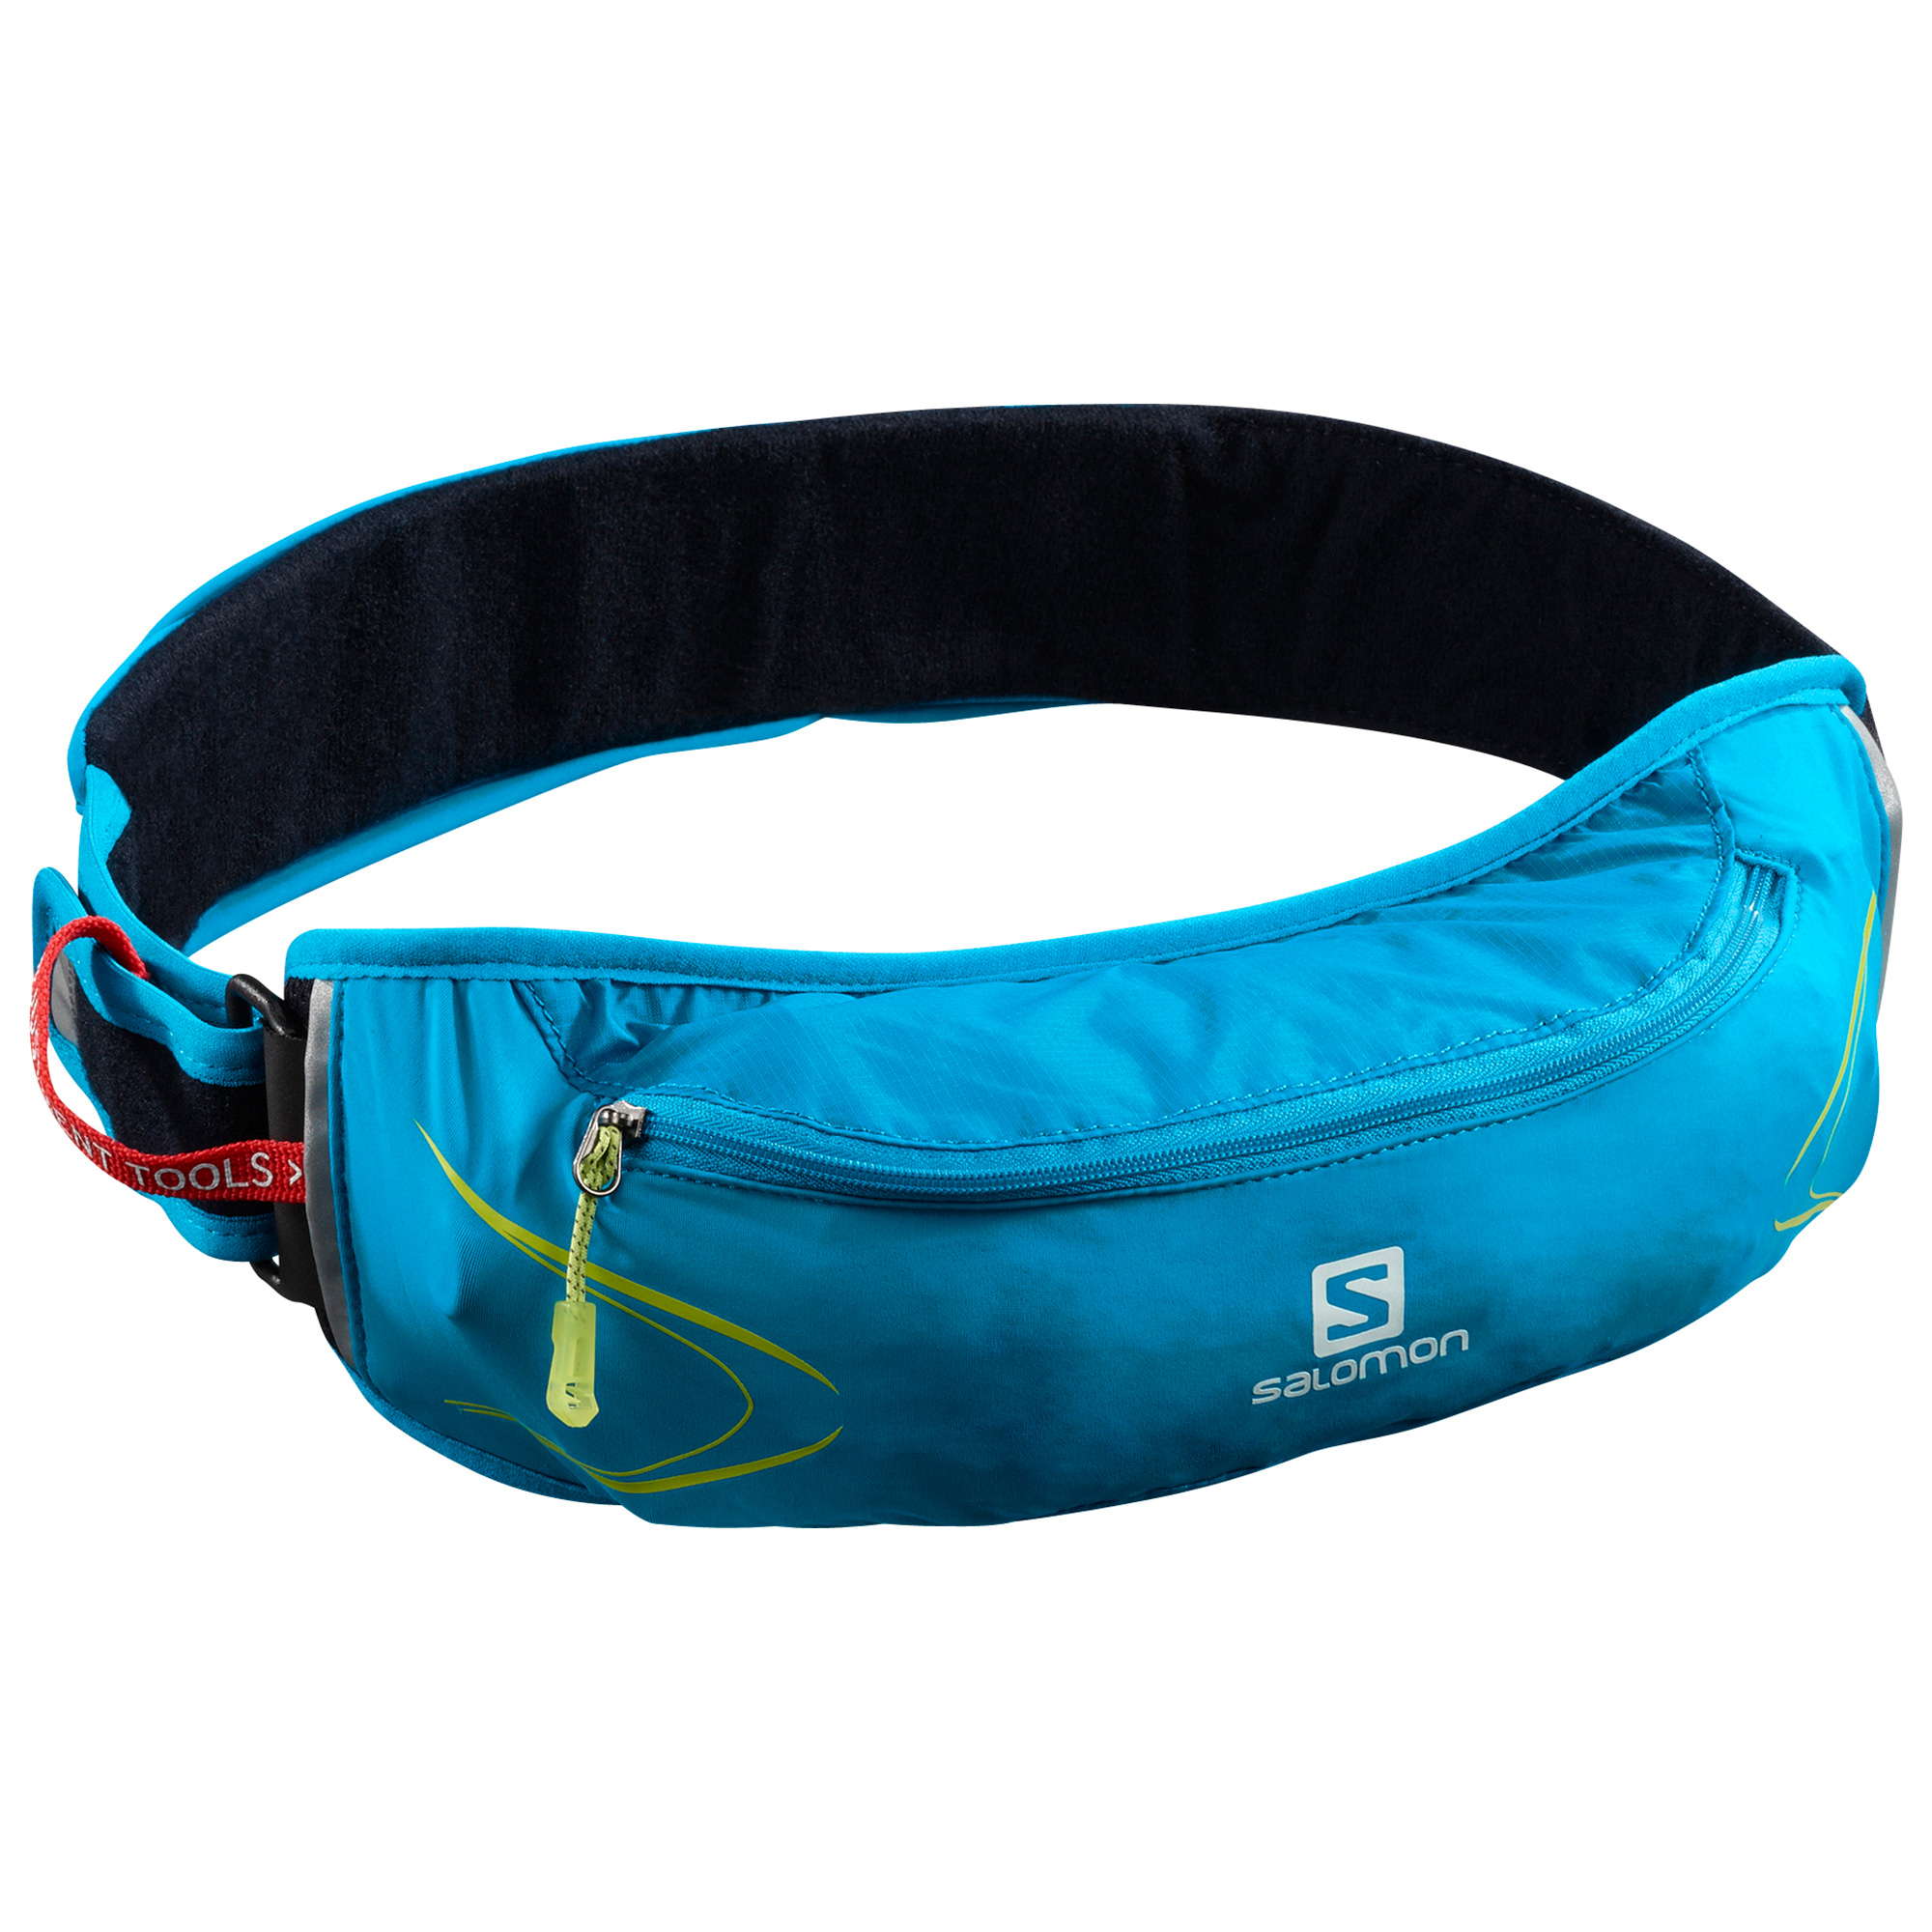 RIÑONERA DE SALOMON AGILE 500 BELT SET